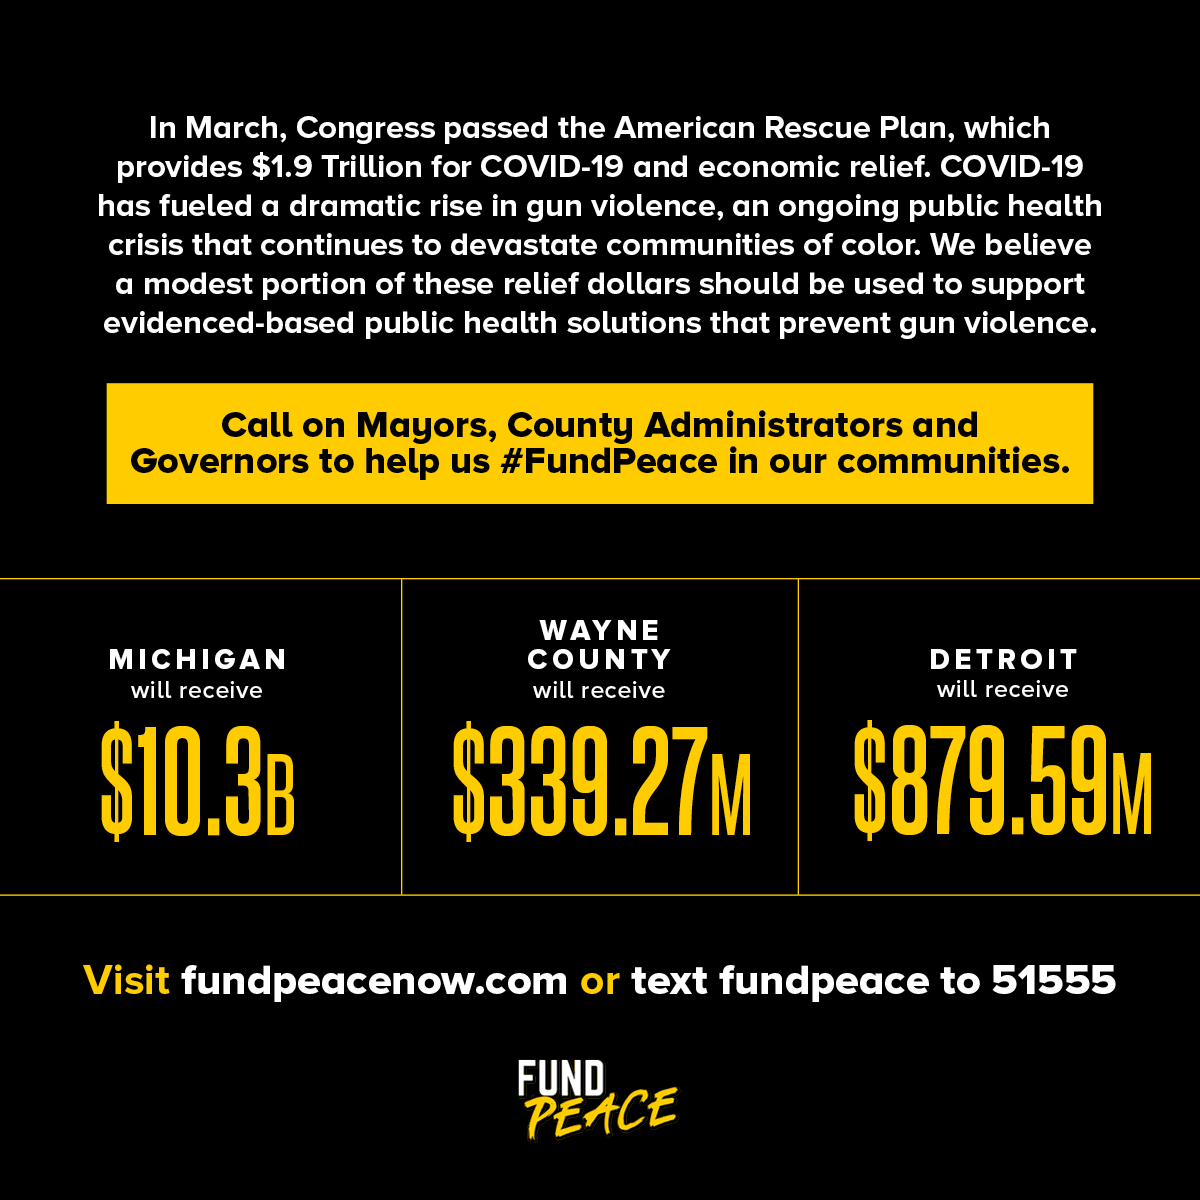 In March, Congress passed the American Rescue Plan, which provides $1.9 Trillion for COVID-19 and economic relief. COVID-19 has fueled a dramatic rise in gun violence, an ongoing public health crisis that continues to devastate communities of color. We believe a modest portion of these relief dollars should be used to support evidenced-based public health solutions that prevent gun violence.  Call on Mayors, County Administrators and Governors to help us #FundPeace in out communities.  - Michigan will receive $10.3 billion. - Wayne County will receive $339.27 million. - Detroit will receive $879.59 million.